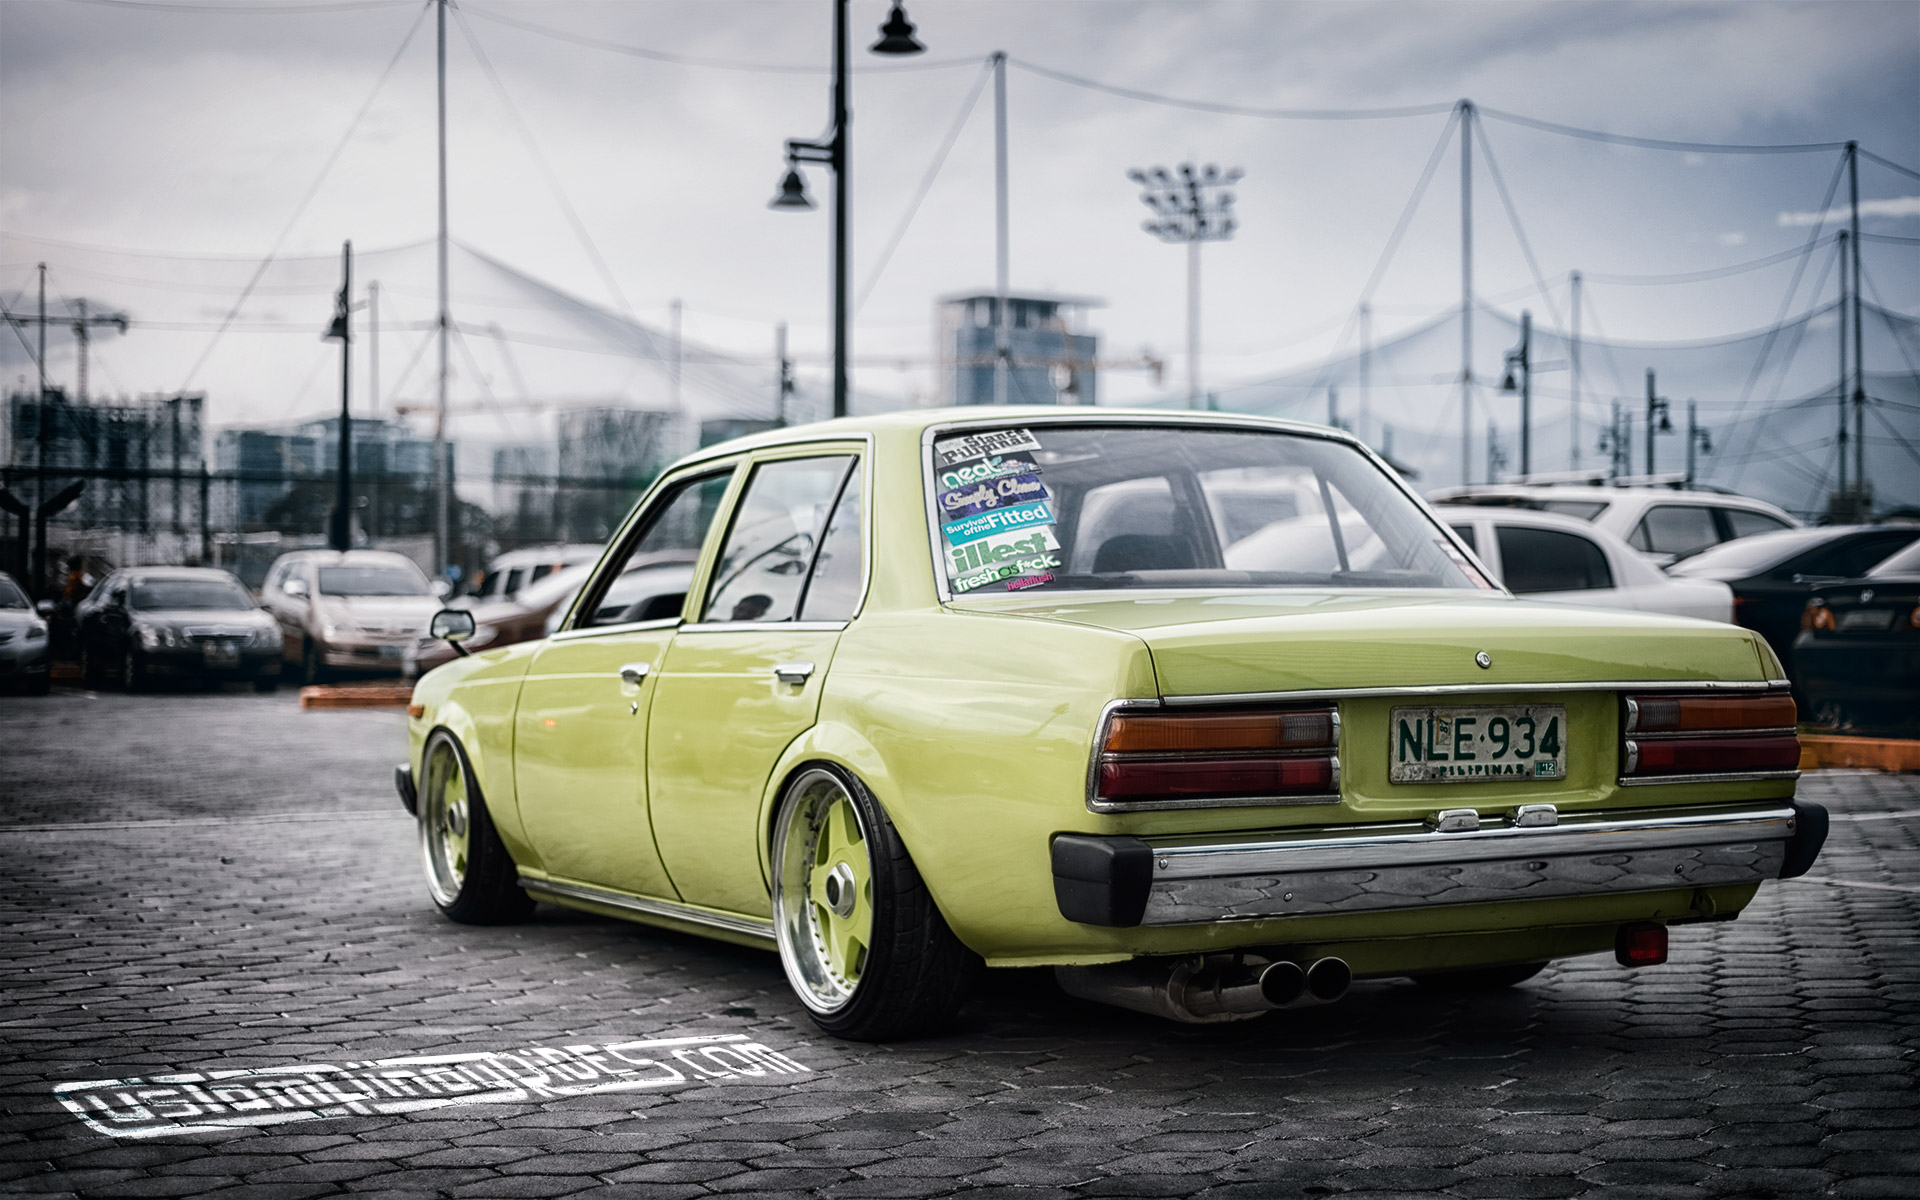 Custom Pinoy Rides Wallpaper Wednesdays Stanced Old School Toyota Corona Car Photography Philippines Philip Aragones